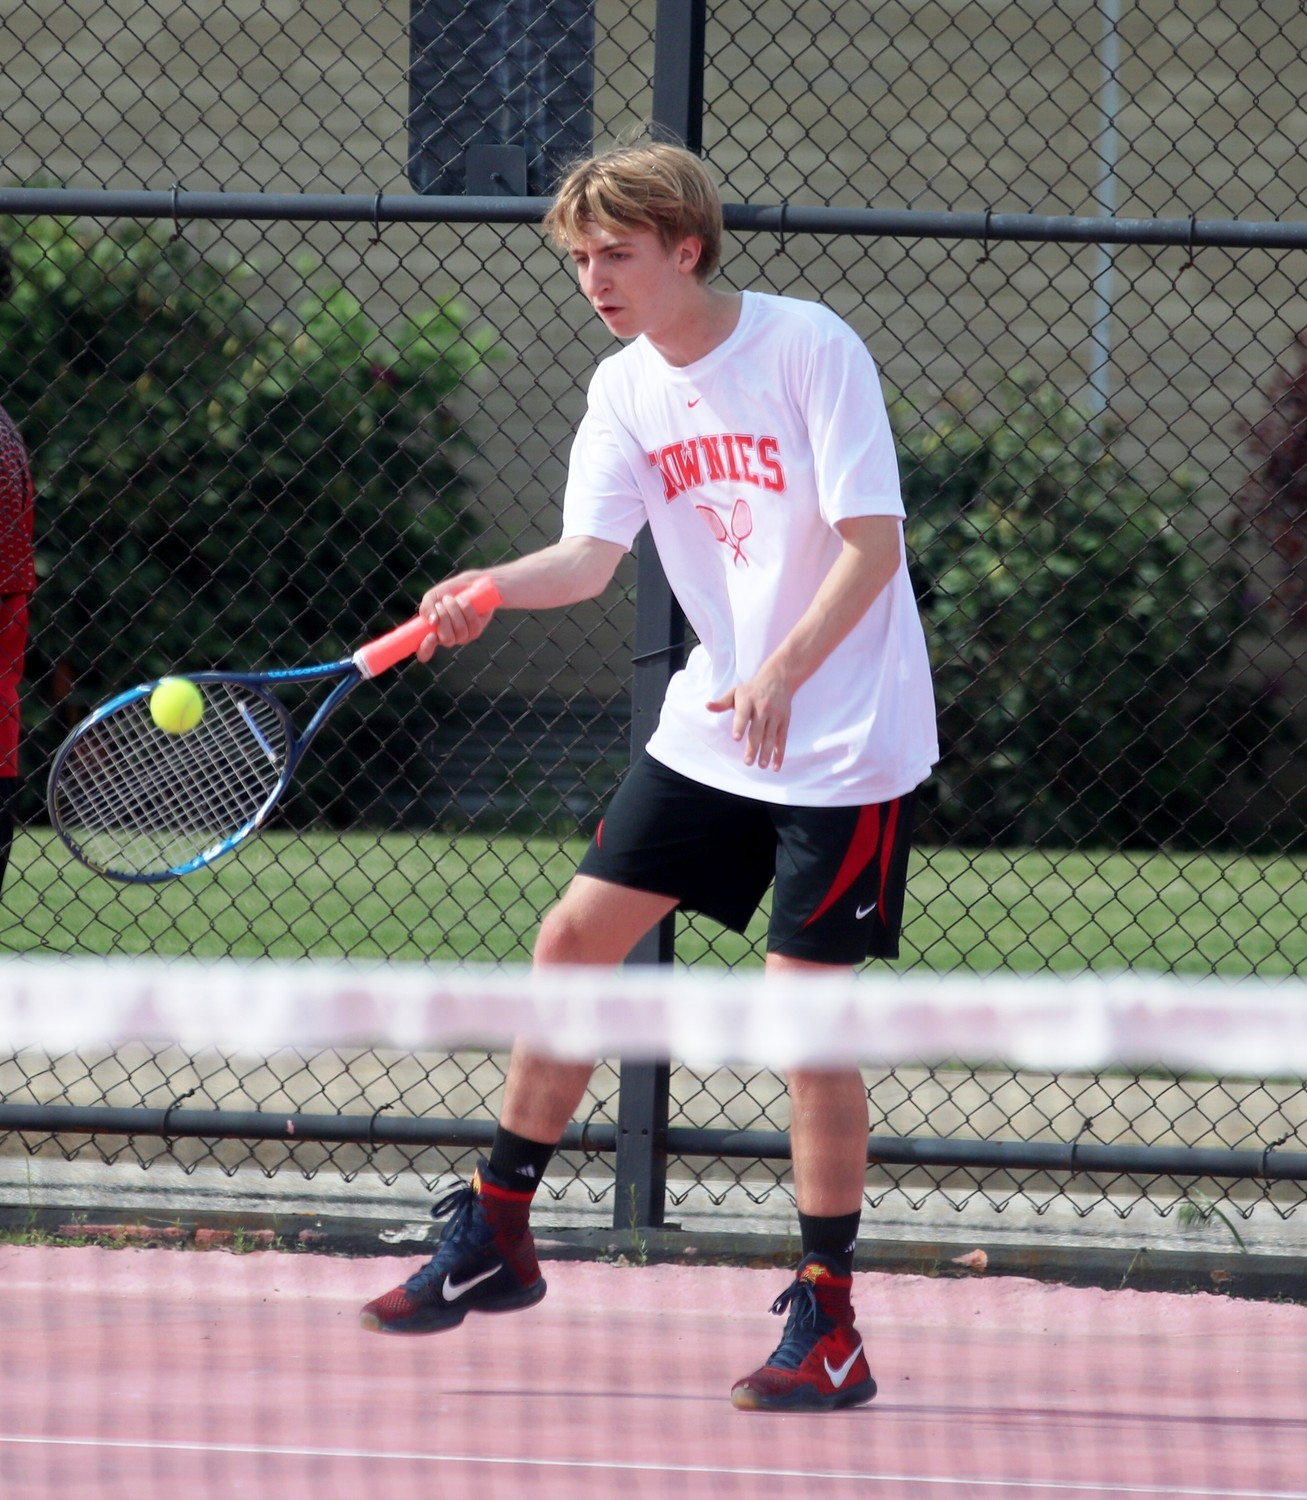 Dan Forsythe returning volley for EP in tennis action.